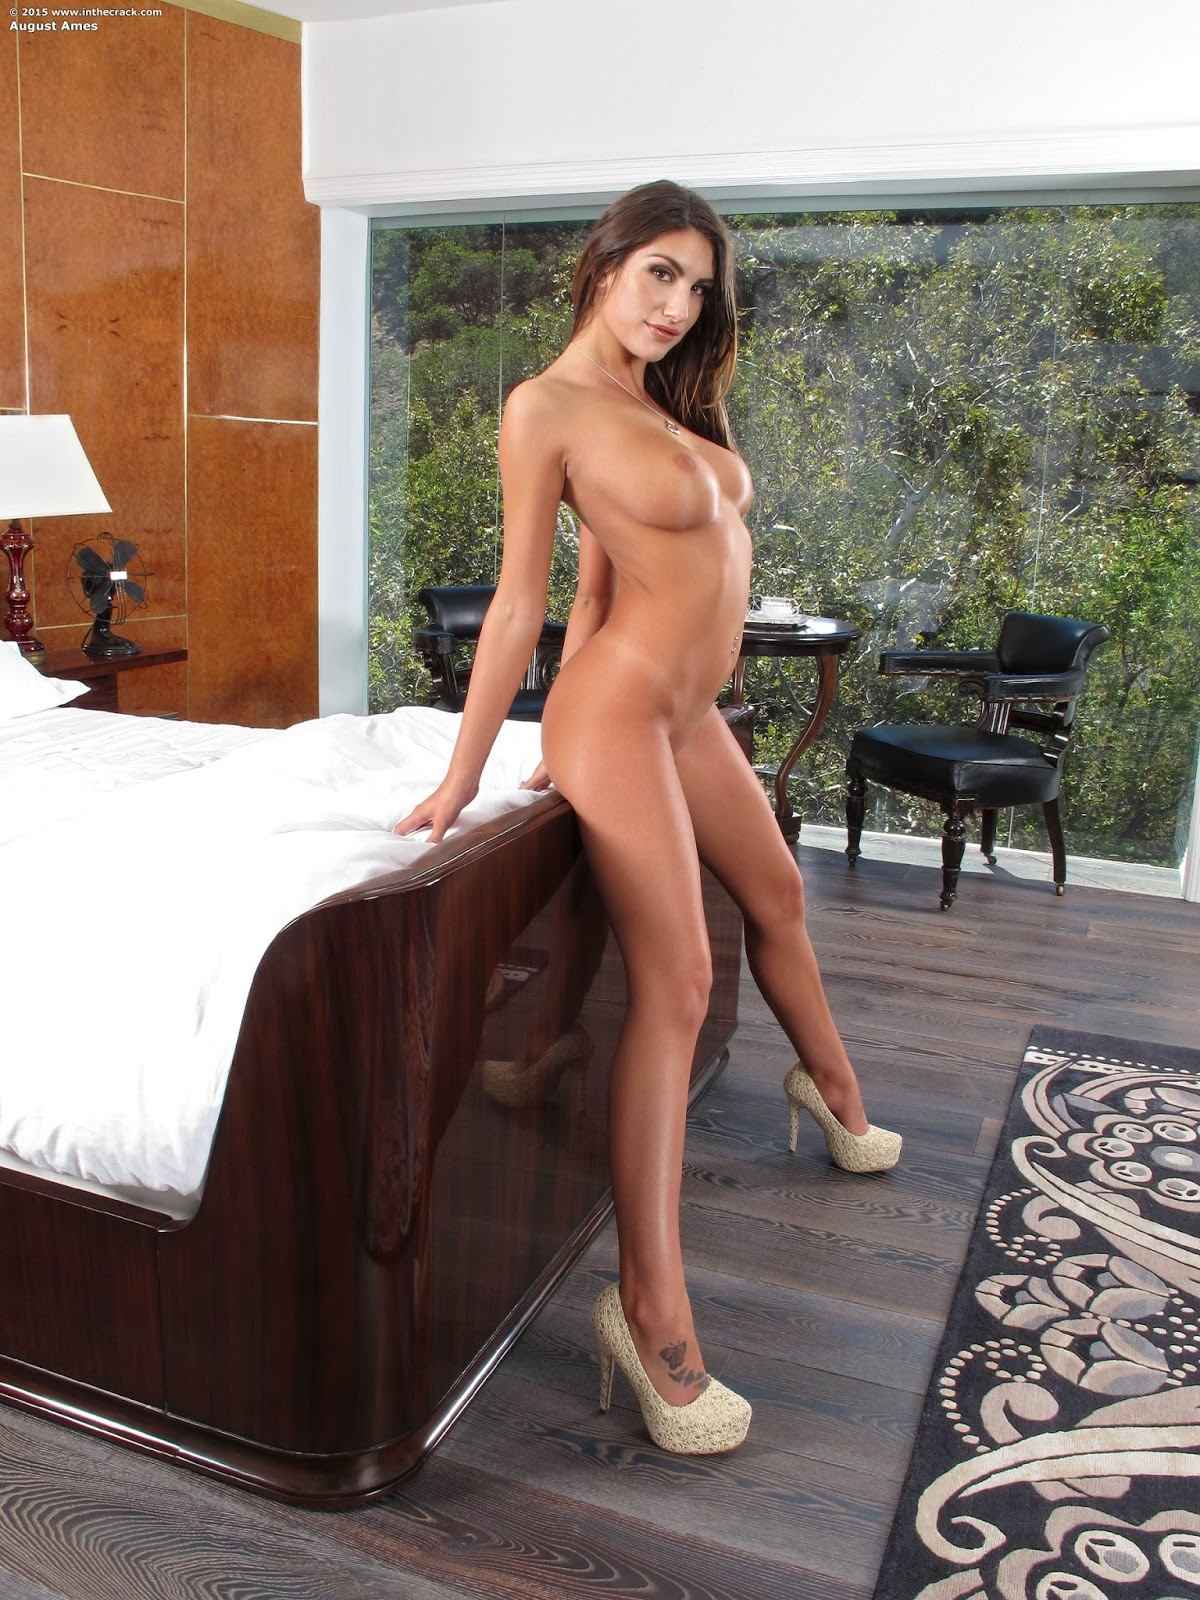 Inthecrack august ames